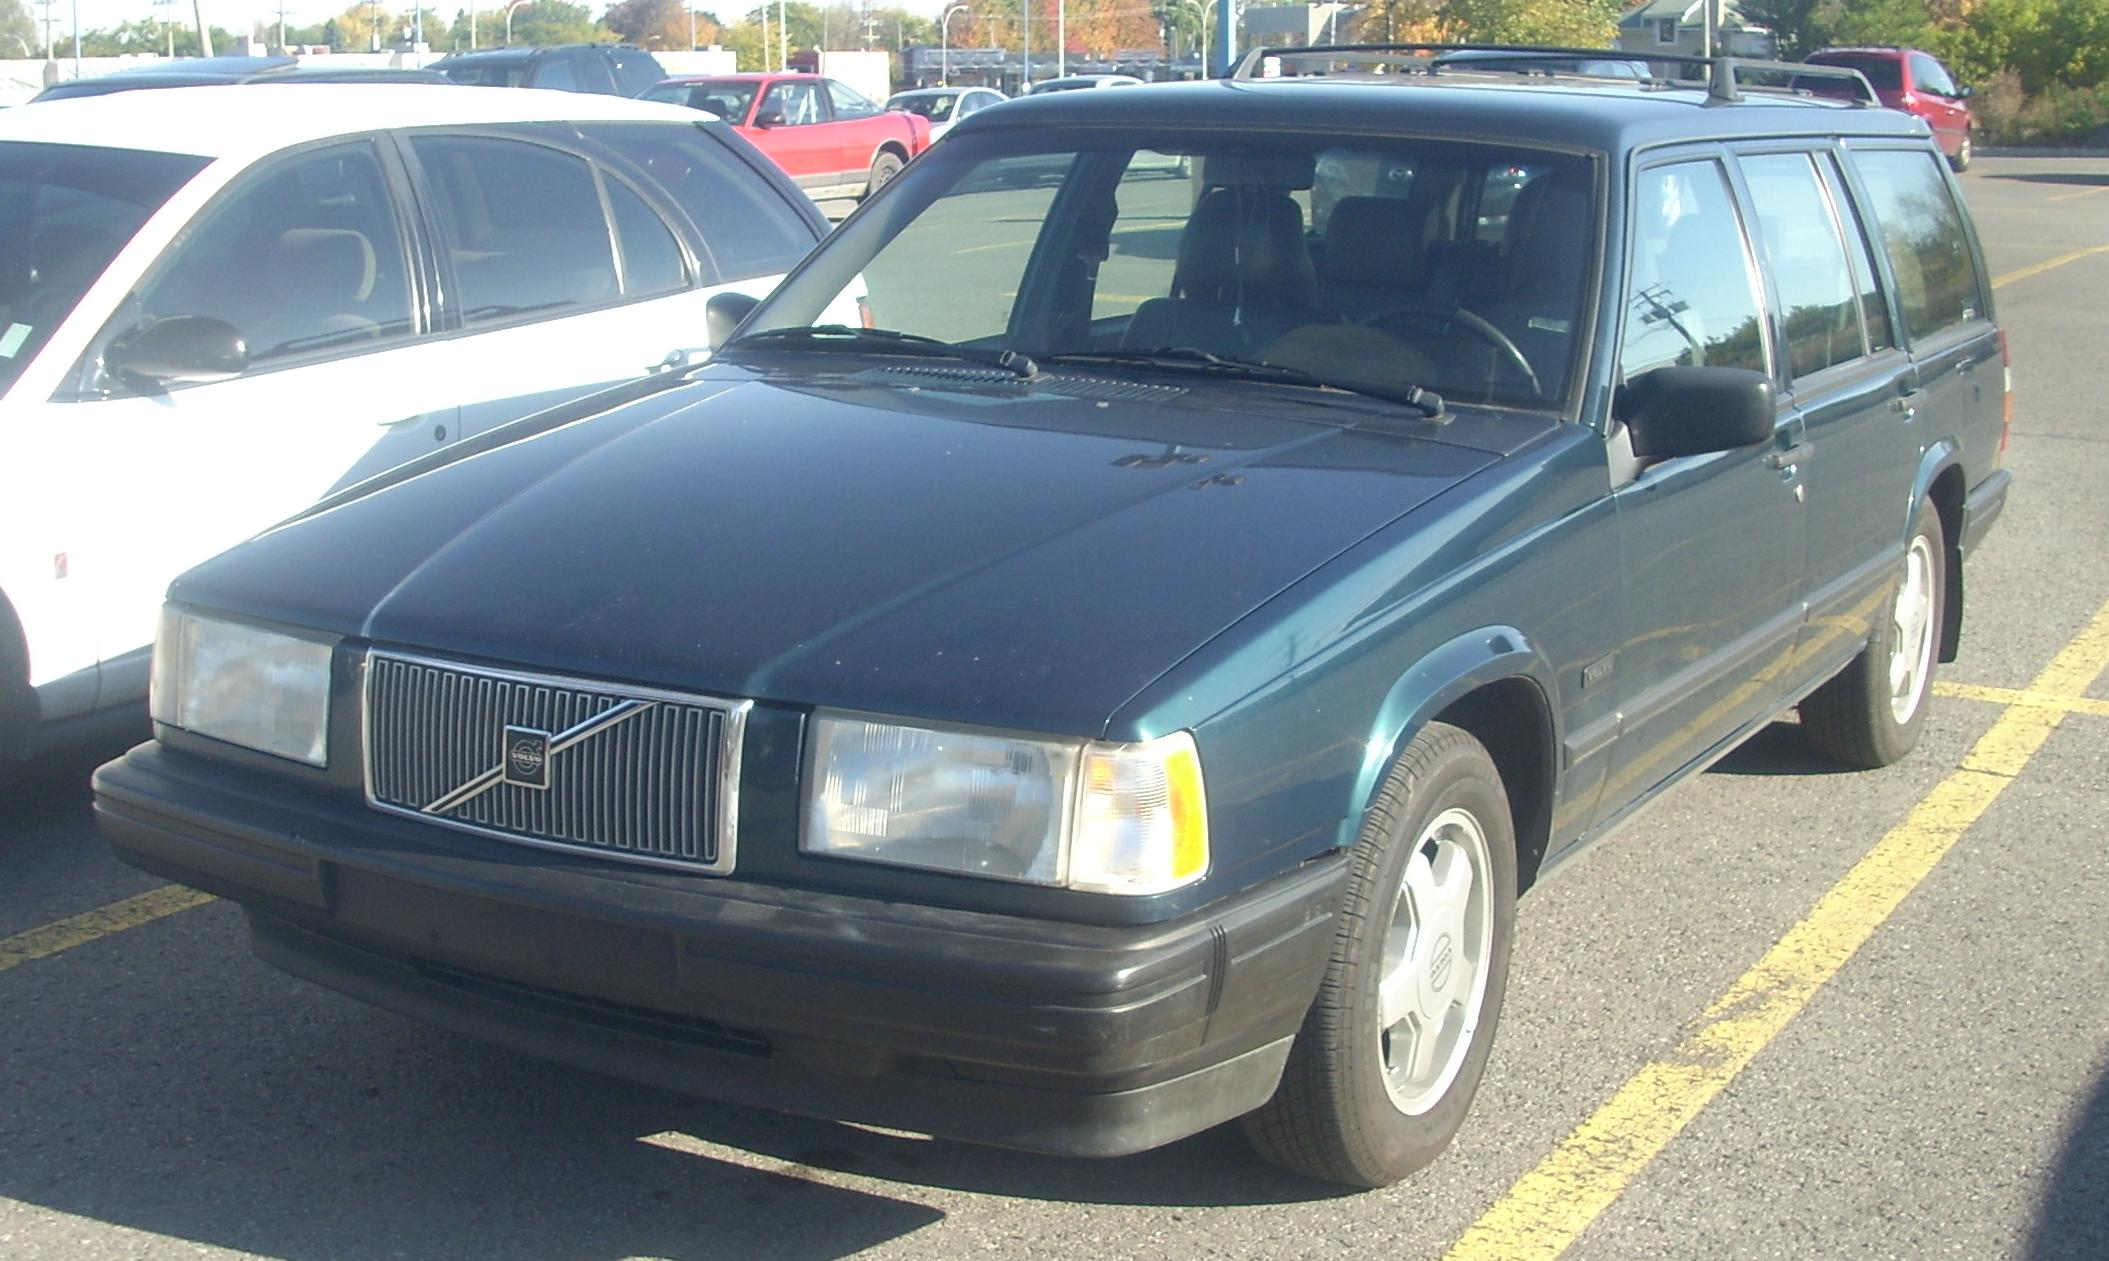 File:'92-'93 Volvo 940 Wagon (Front).JPG - Wikimedia Commons